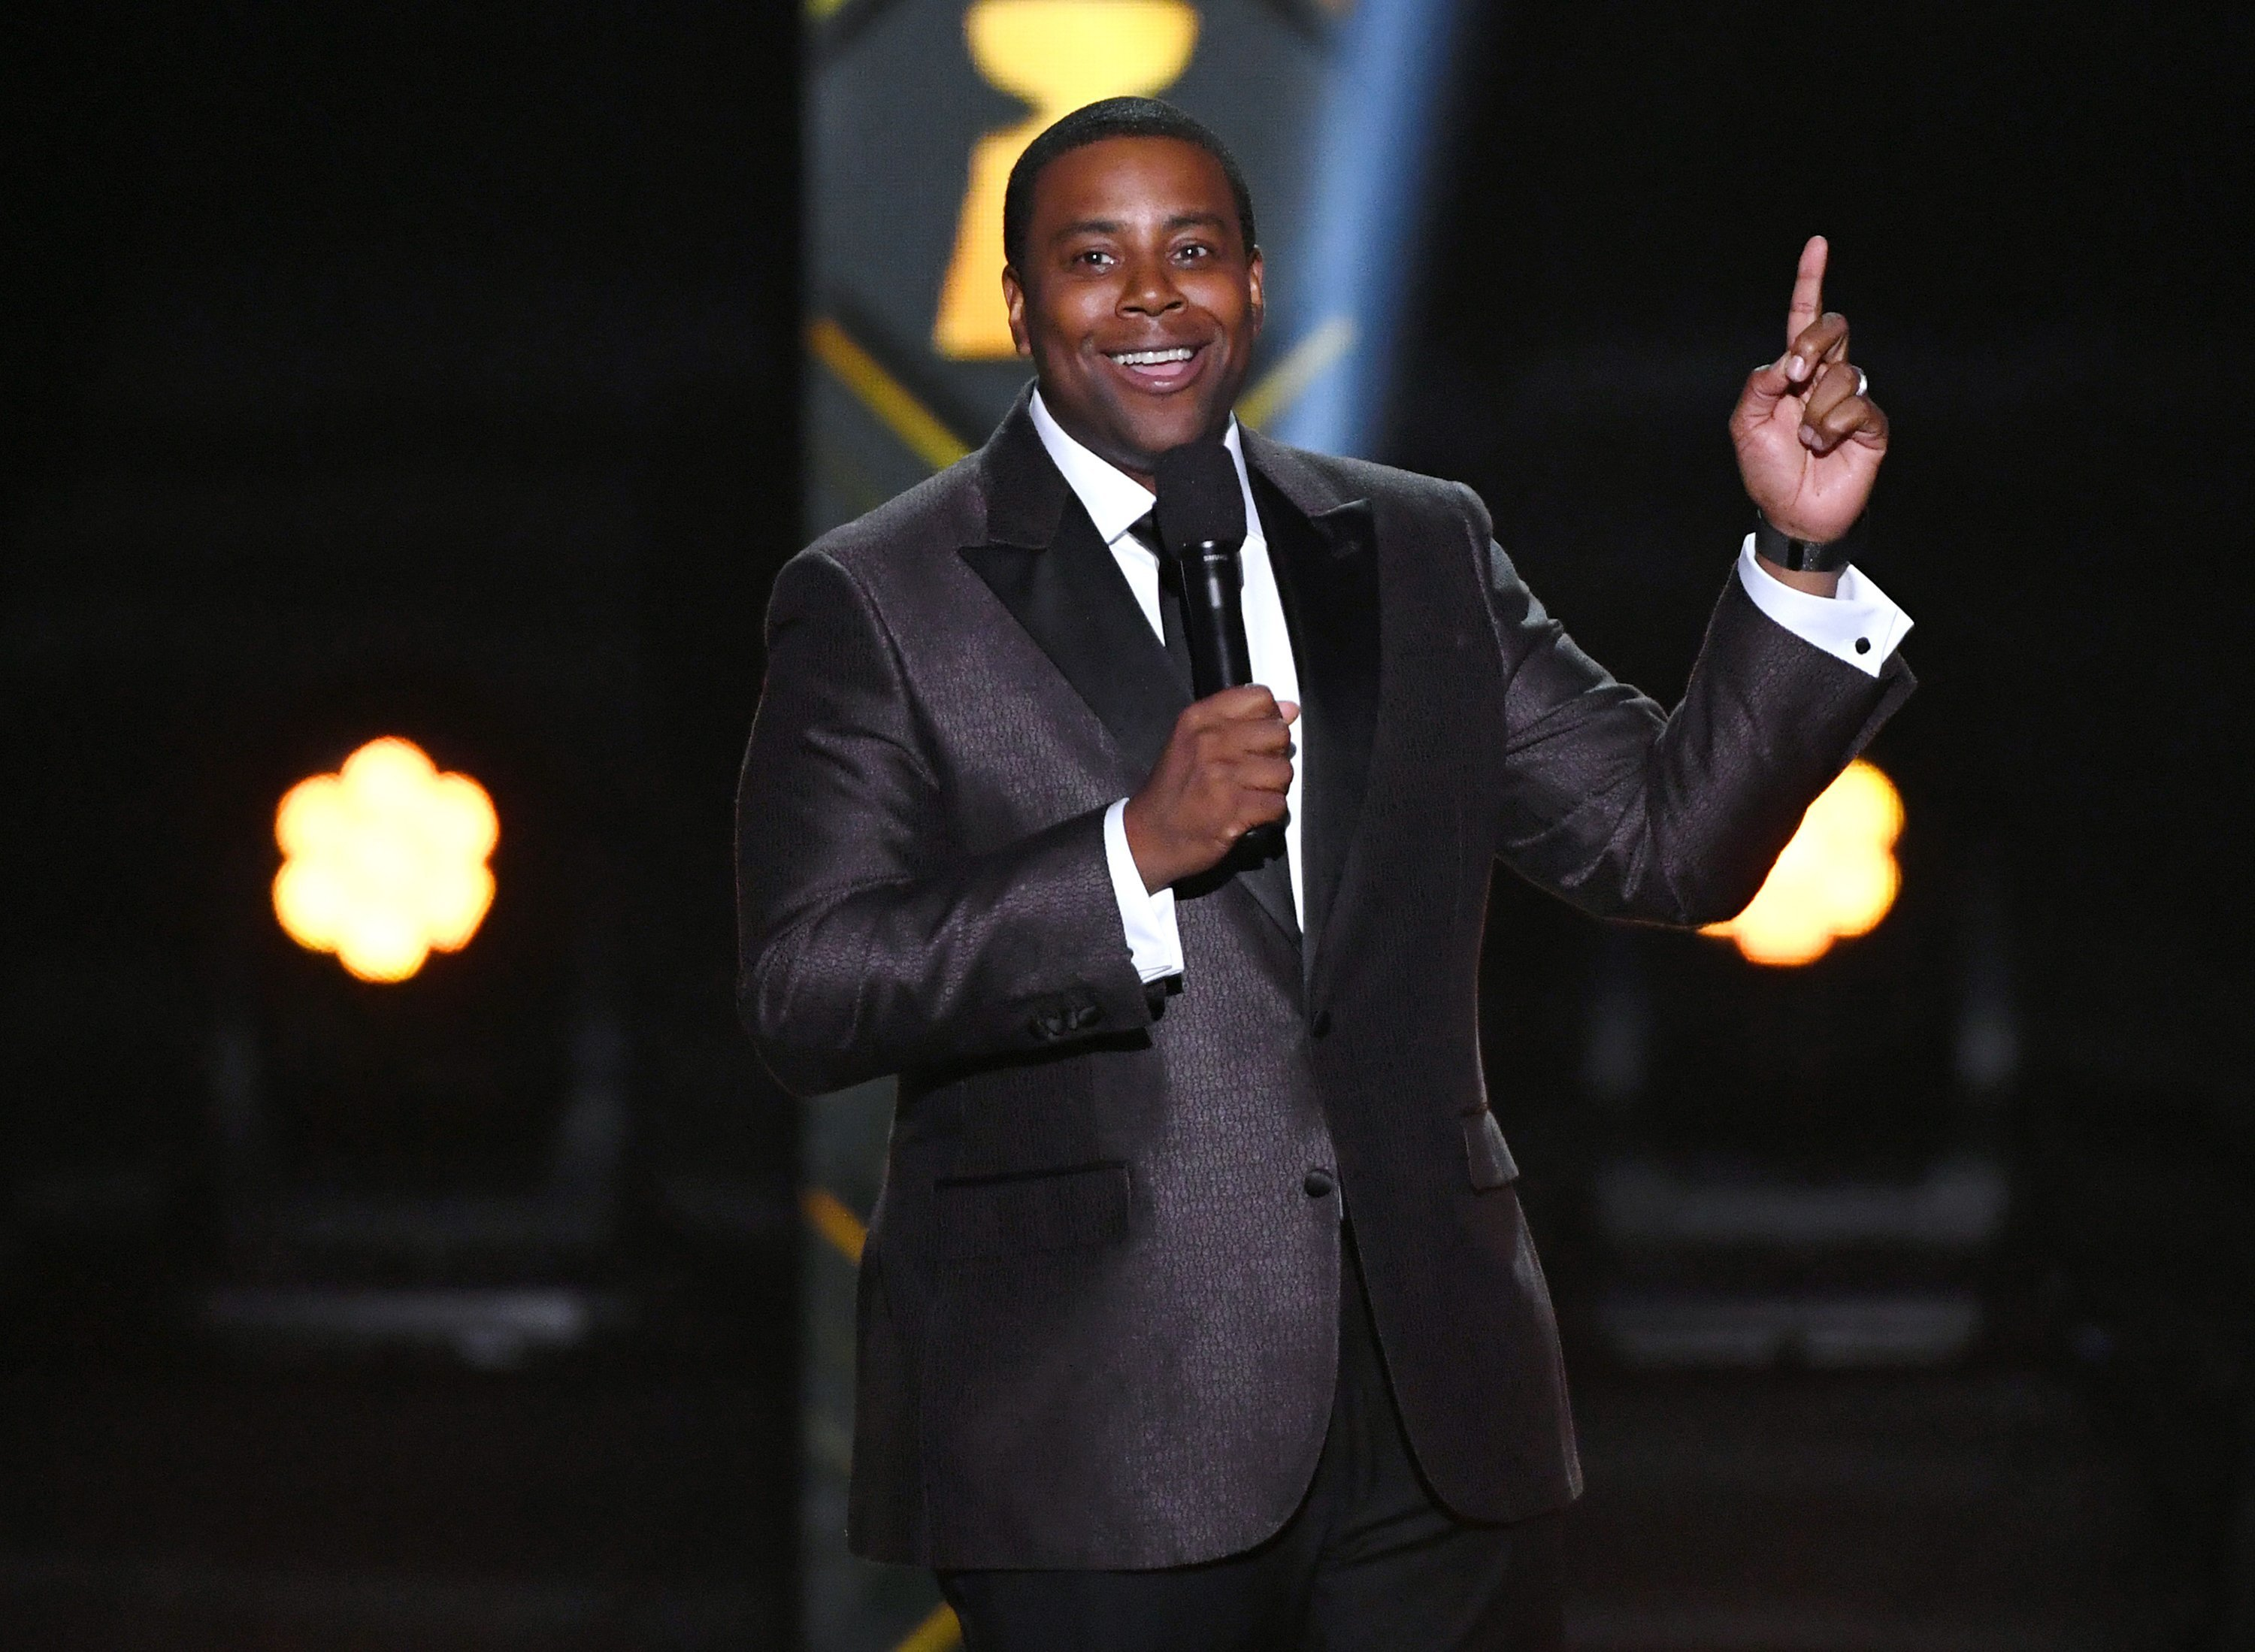 The White House Correspondents' Dinner is bringing back the comedy with Kenan Thompson and Hasan Minhaj